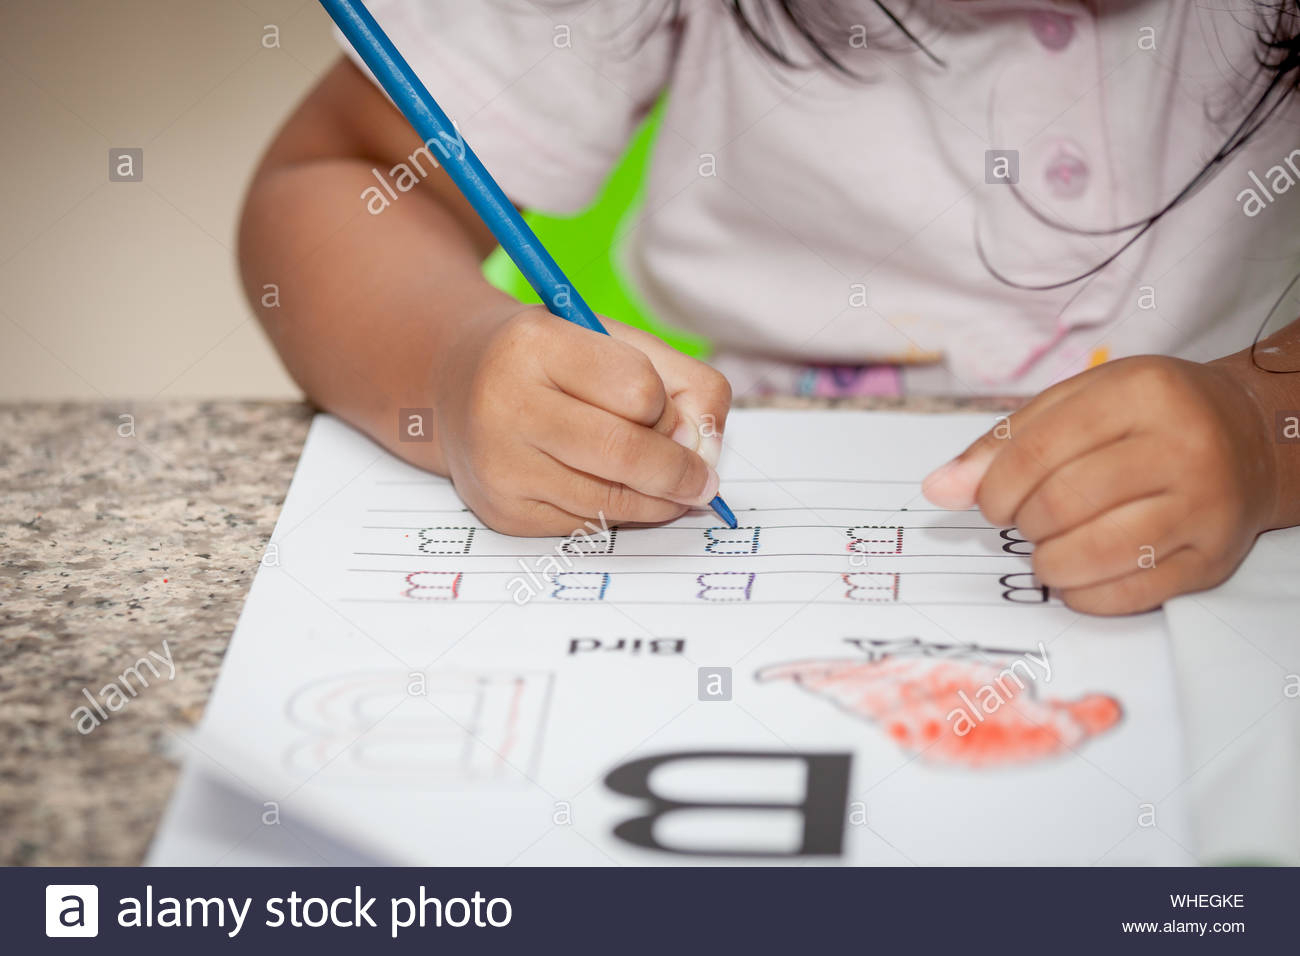 Child Tracing Hand Stock Photos & Child Tracing Hand Stock in Tracing Letters With Fingers